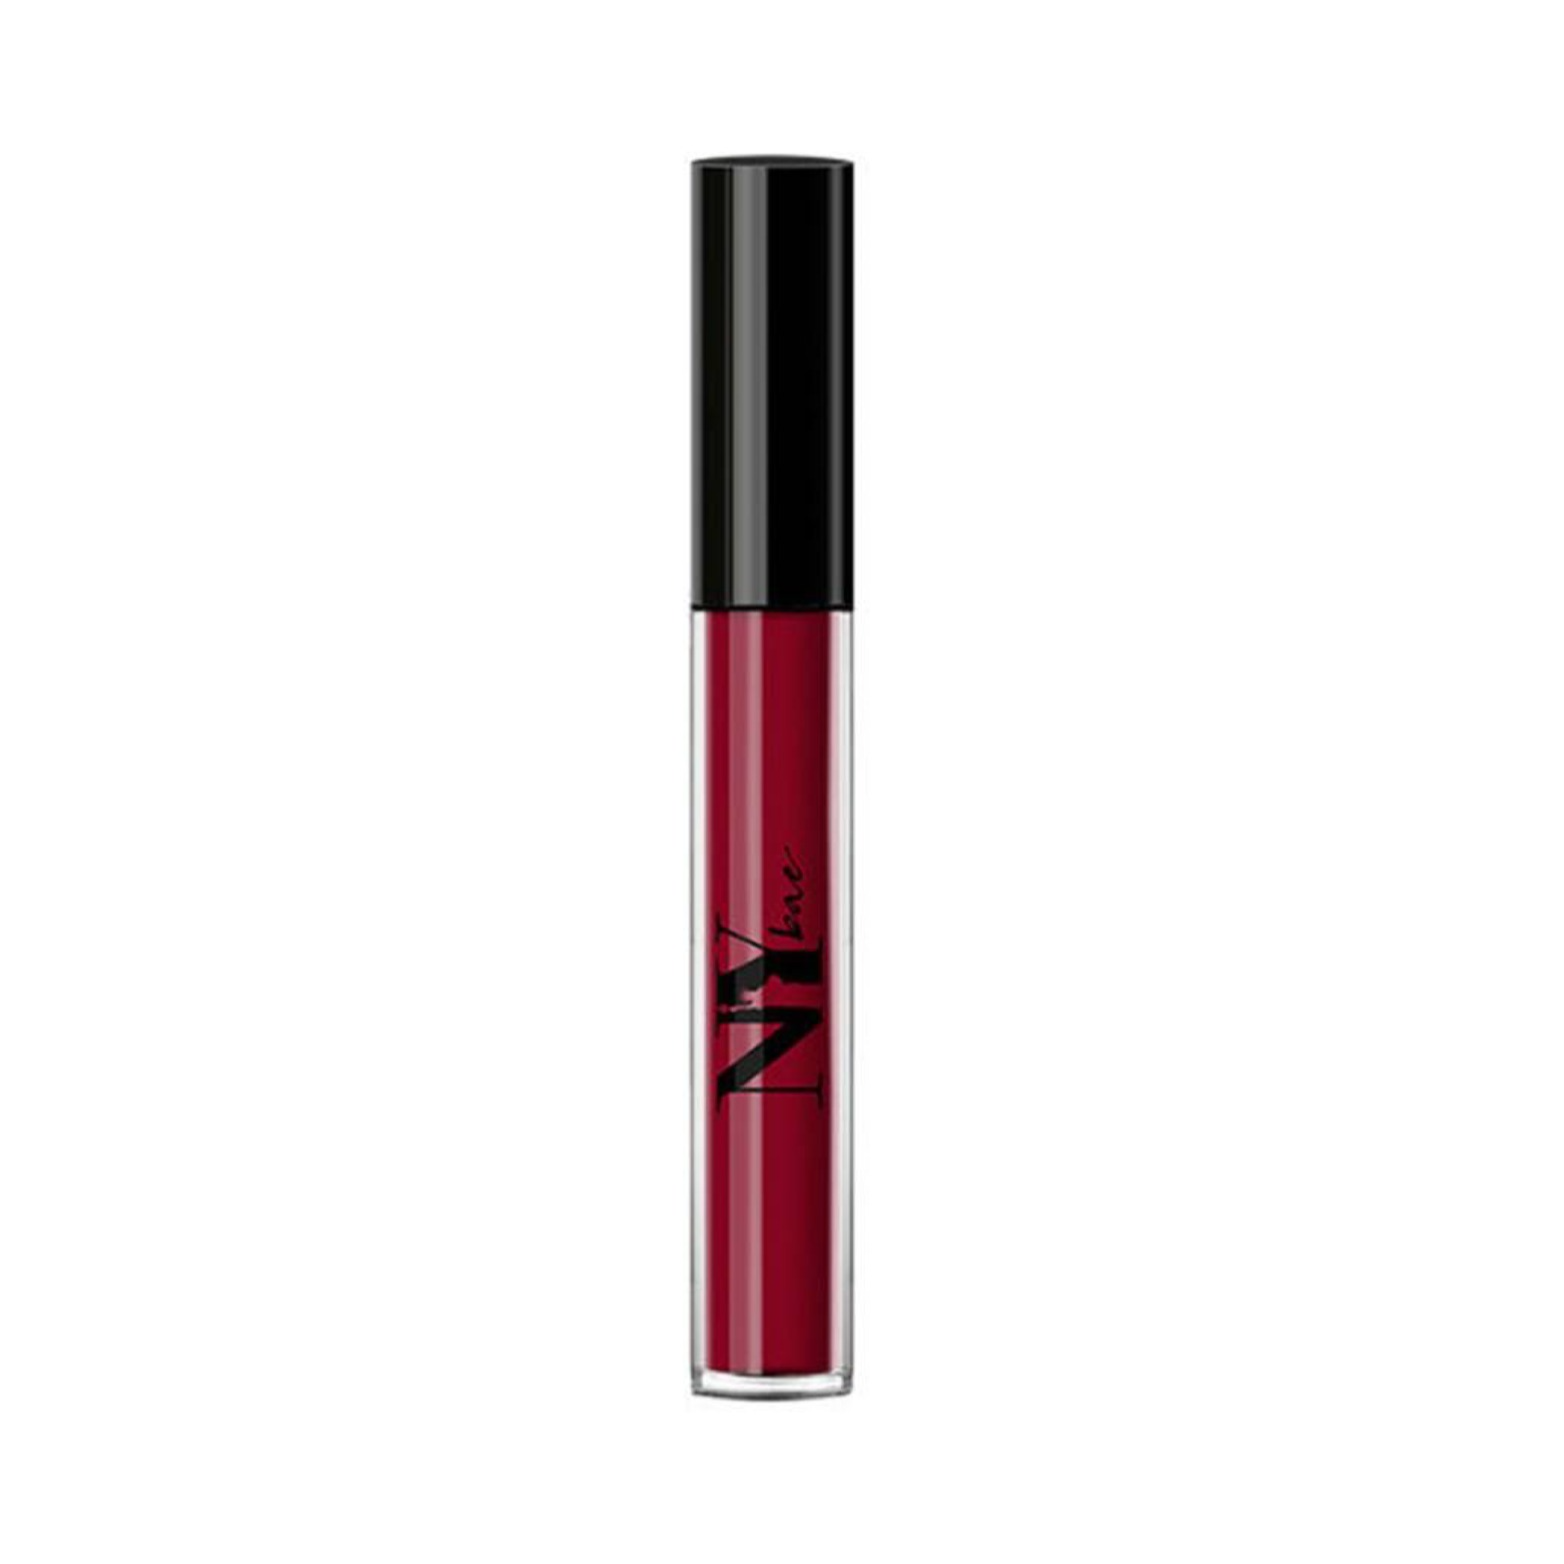 Ny Bae Moisturizing Liquid Lipstick - Price in India, Buy Ny Bae Moisturizing Liquid Lipstick Online In India, Reviews, Ratings & Features | Flipkart.com